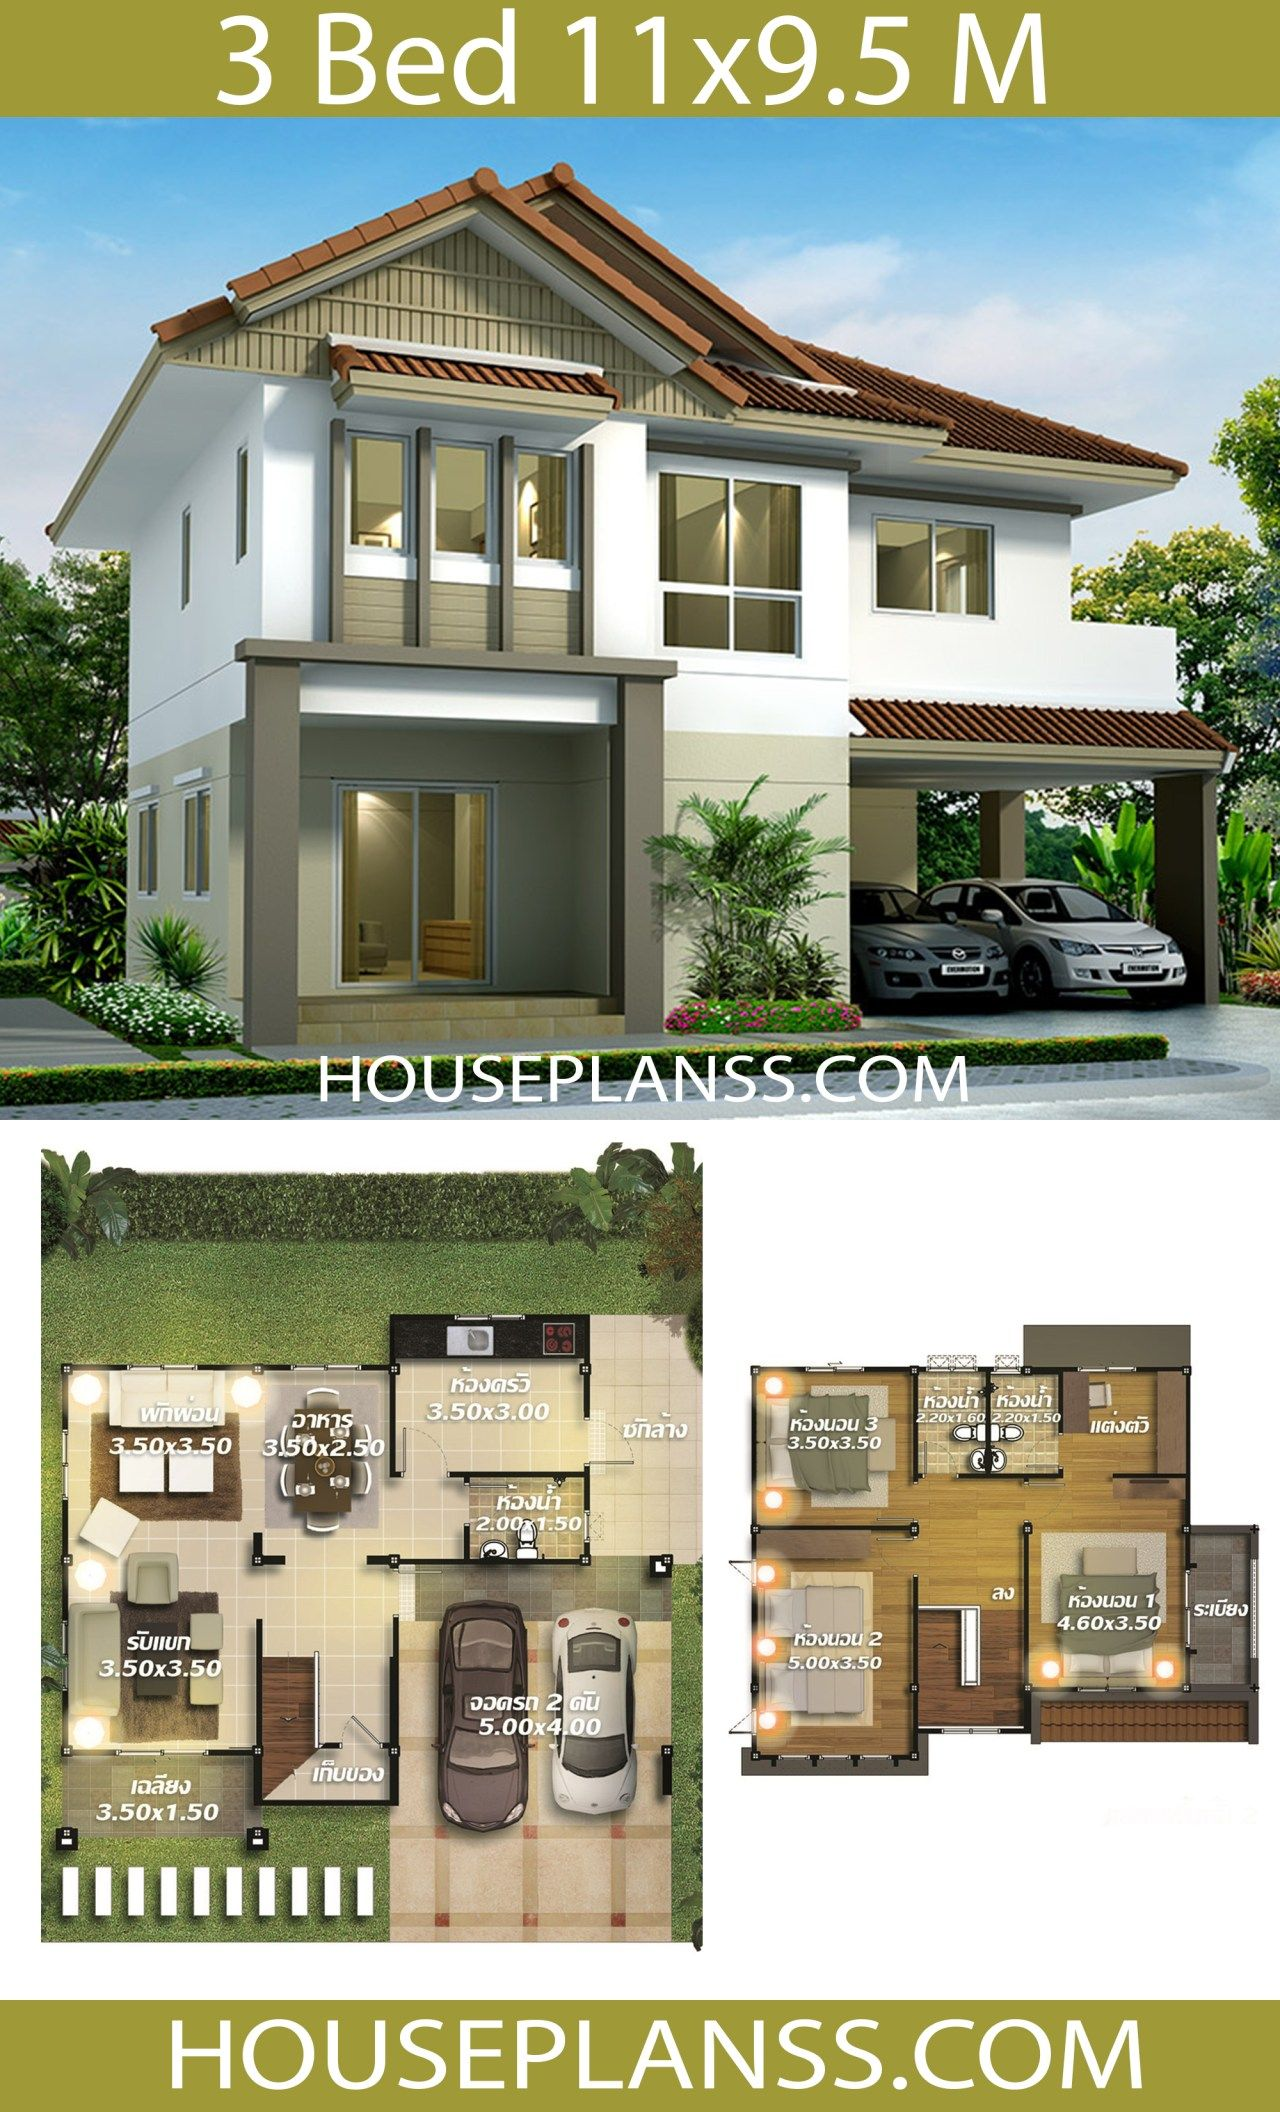 House Design Plans Idea 11x9 5 With 3 Bedrooms Home Ideas House Design Home Building Design House Architecture Design